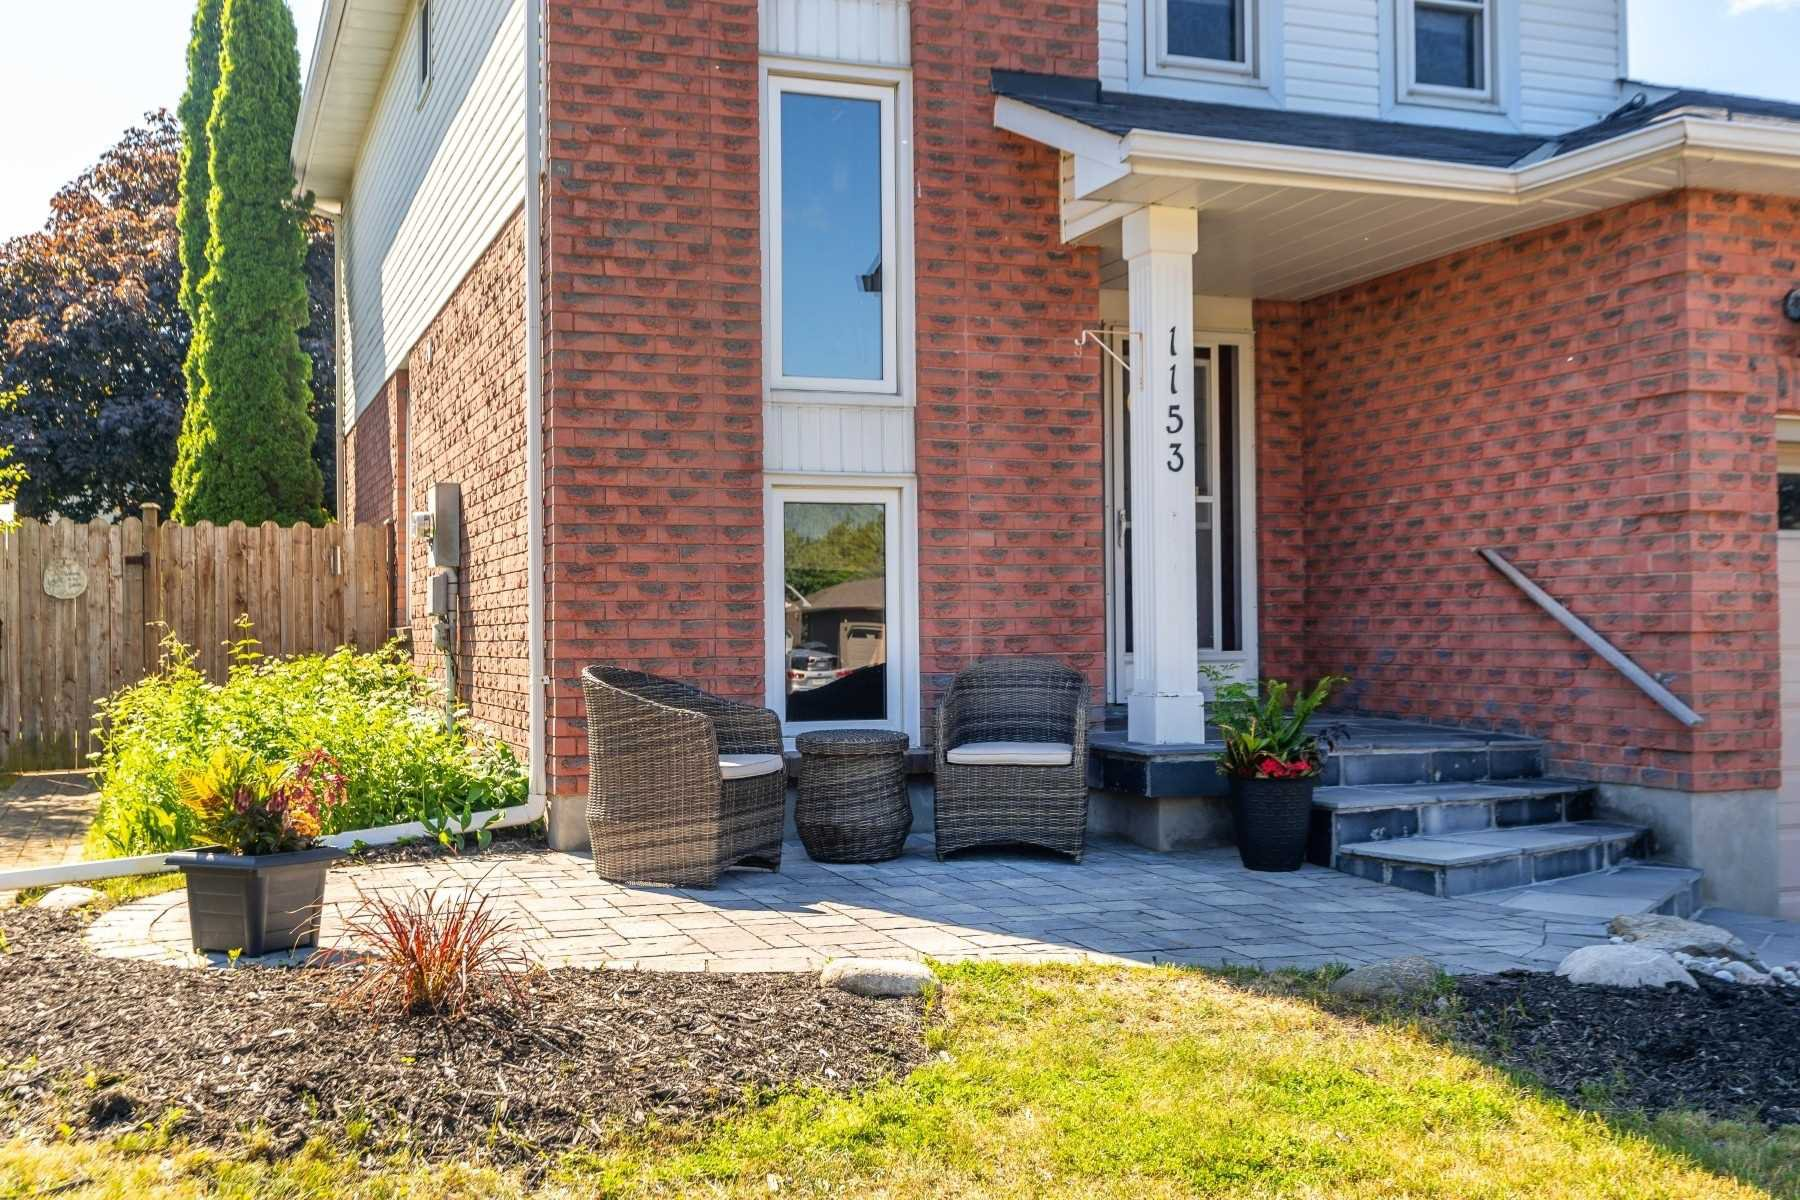 Photo 3: Photos: 1153 Snowberry Court in Oshawa: Pinecrest House (2-Storey) for sale : MLS®# E4794796